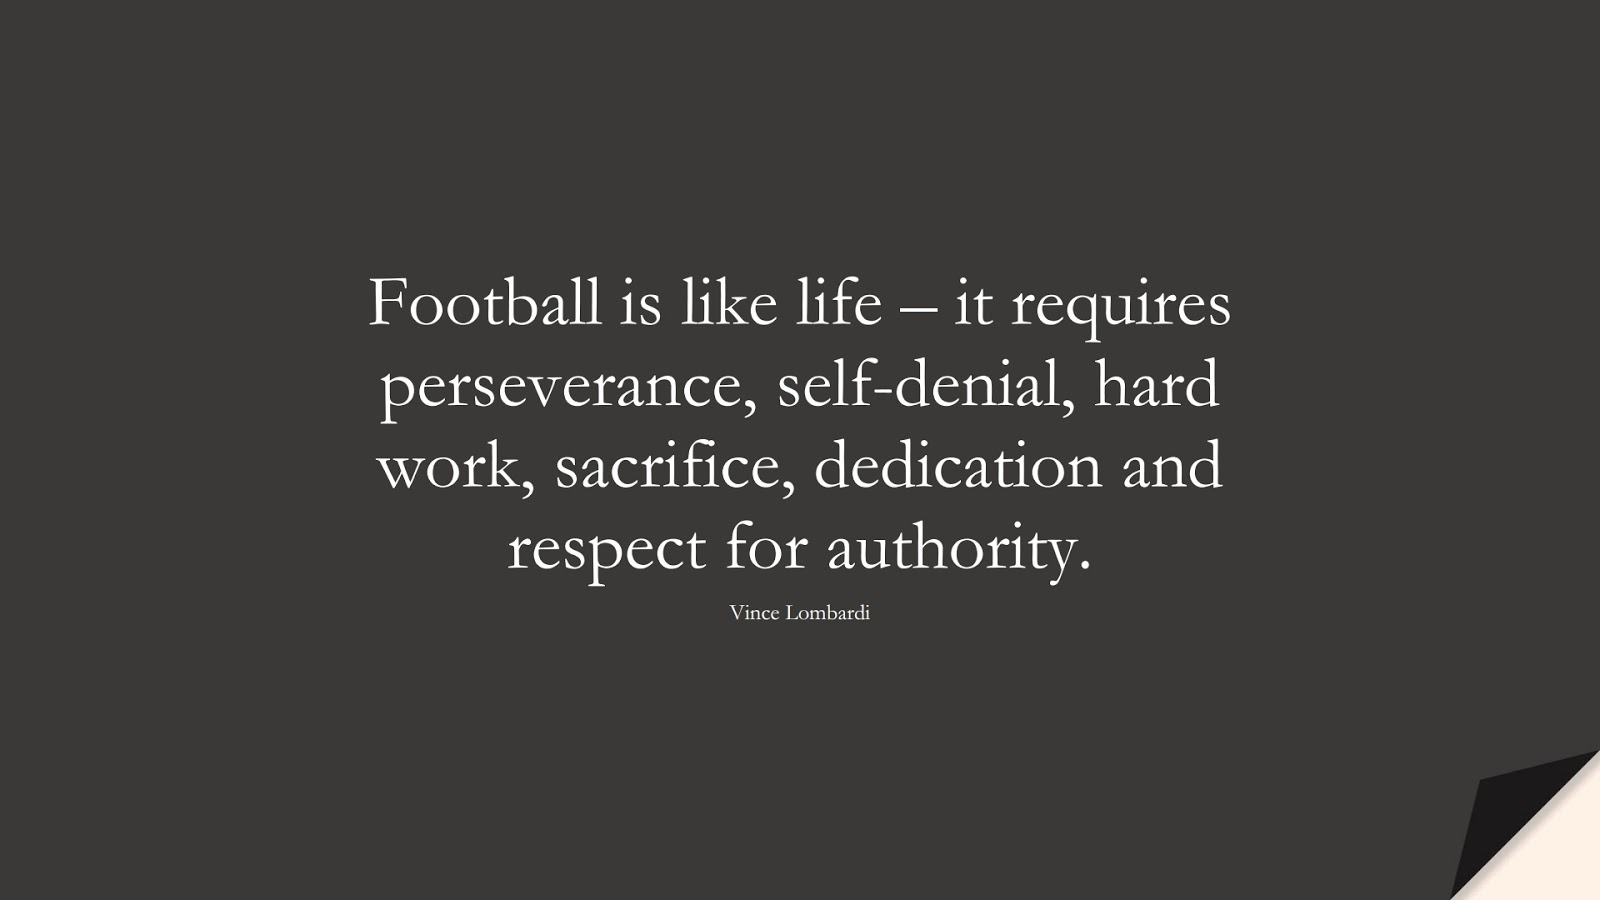 Football is like life – it requires perseverance, self-denial, hard work, sacrifice, dedication and respect for authority. (Vince Lombardi);  #FamousQuotes